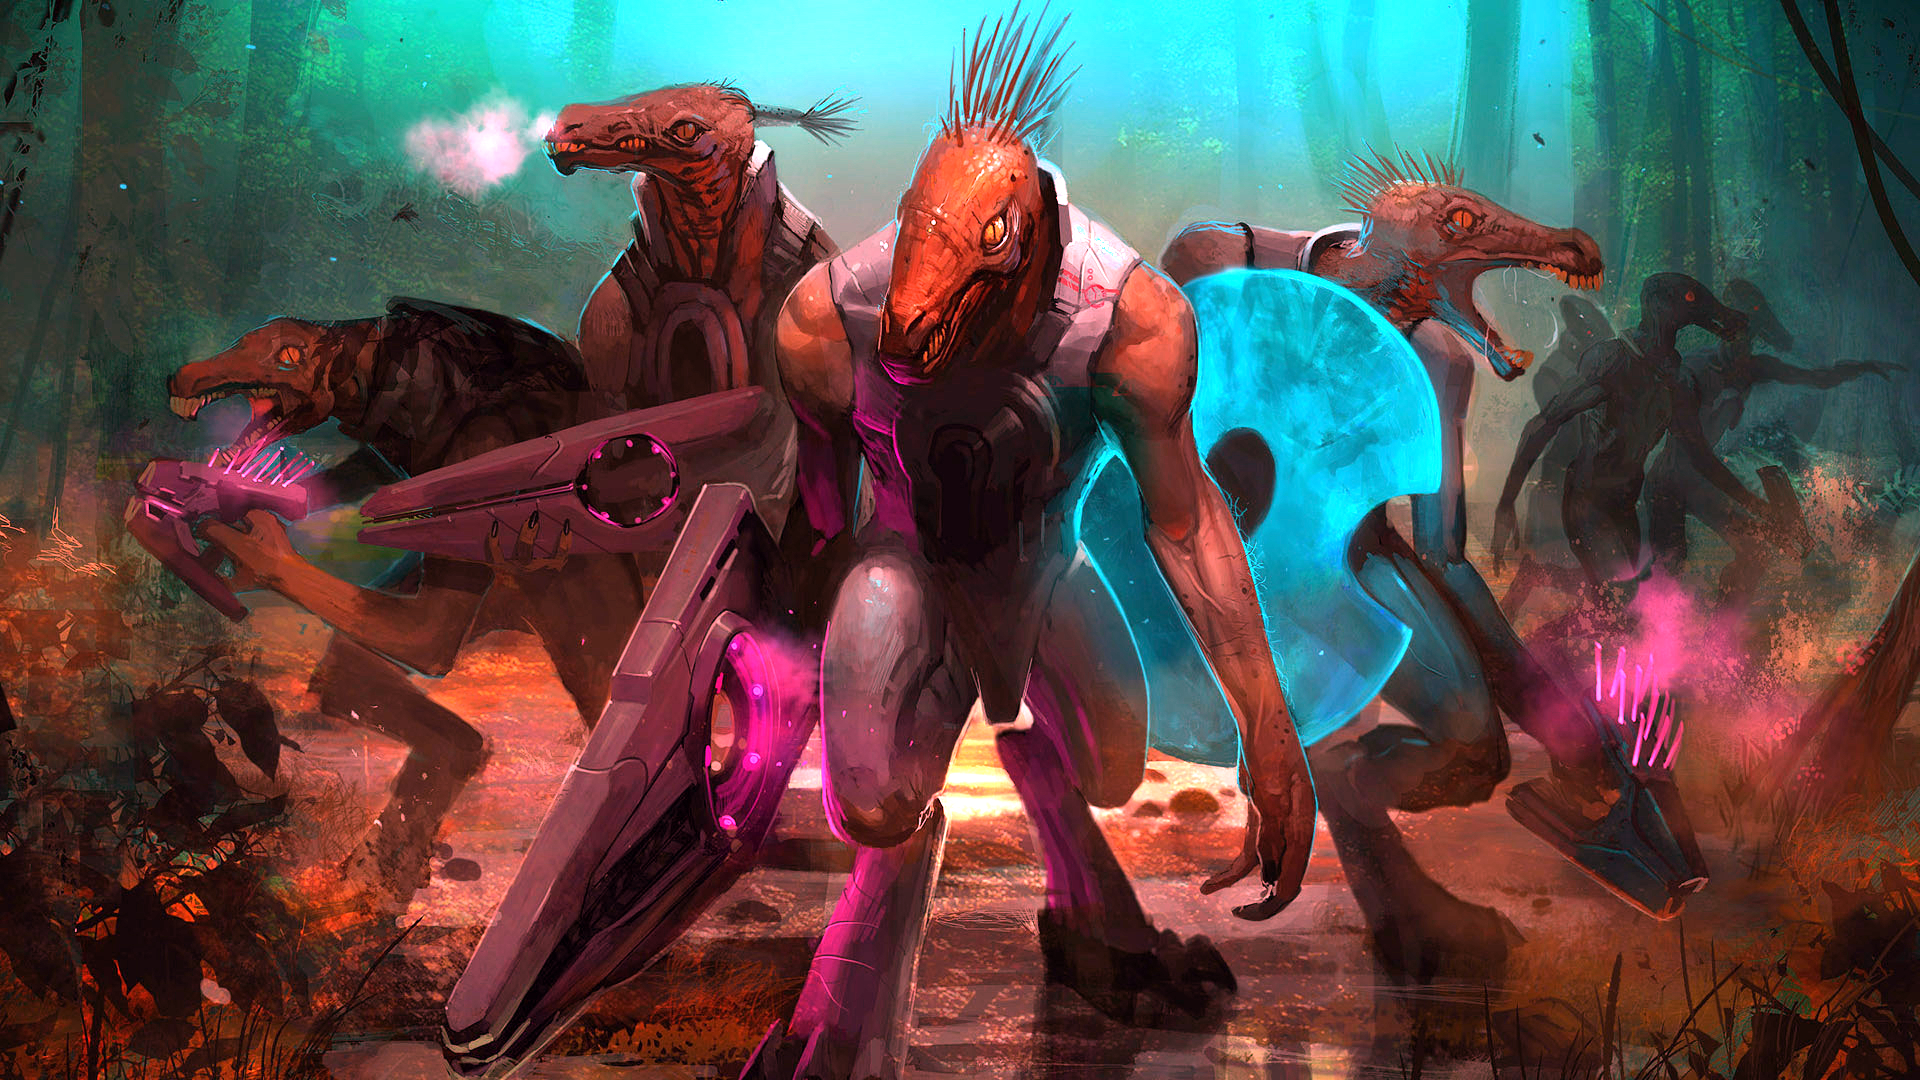 Halo Wars games wallpapers | Hd Wallpapers